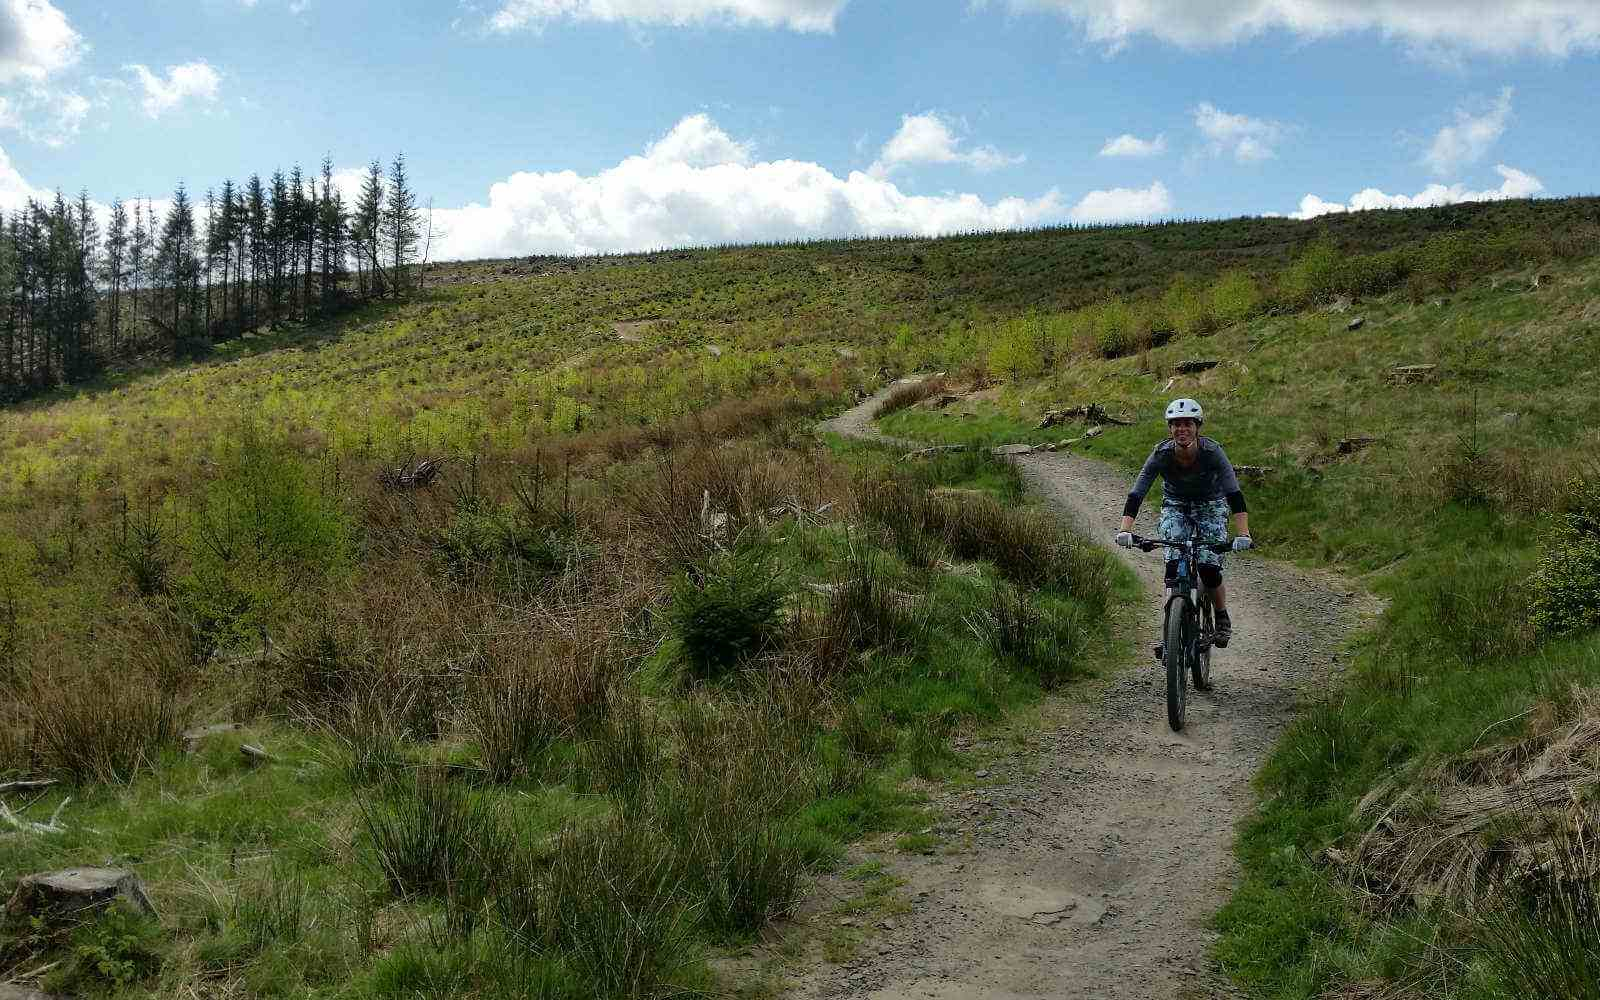 Mountainbiking downhill on trails at Bike Park Wales